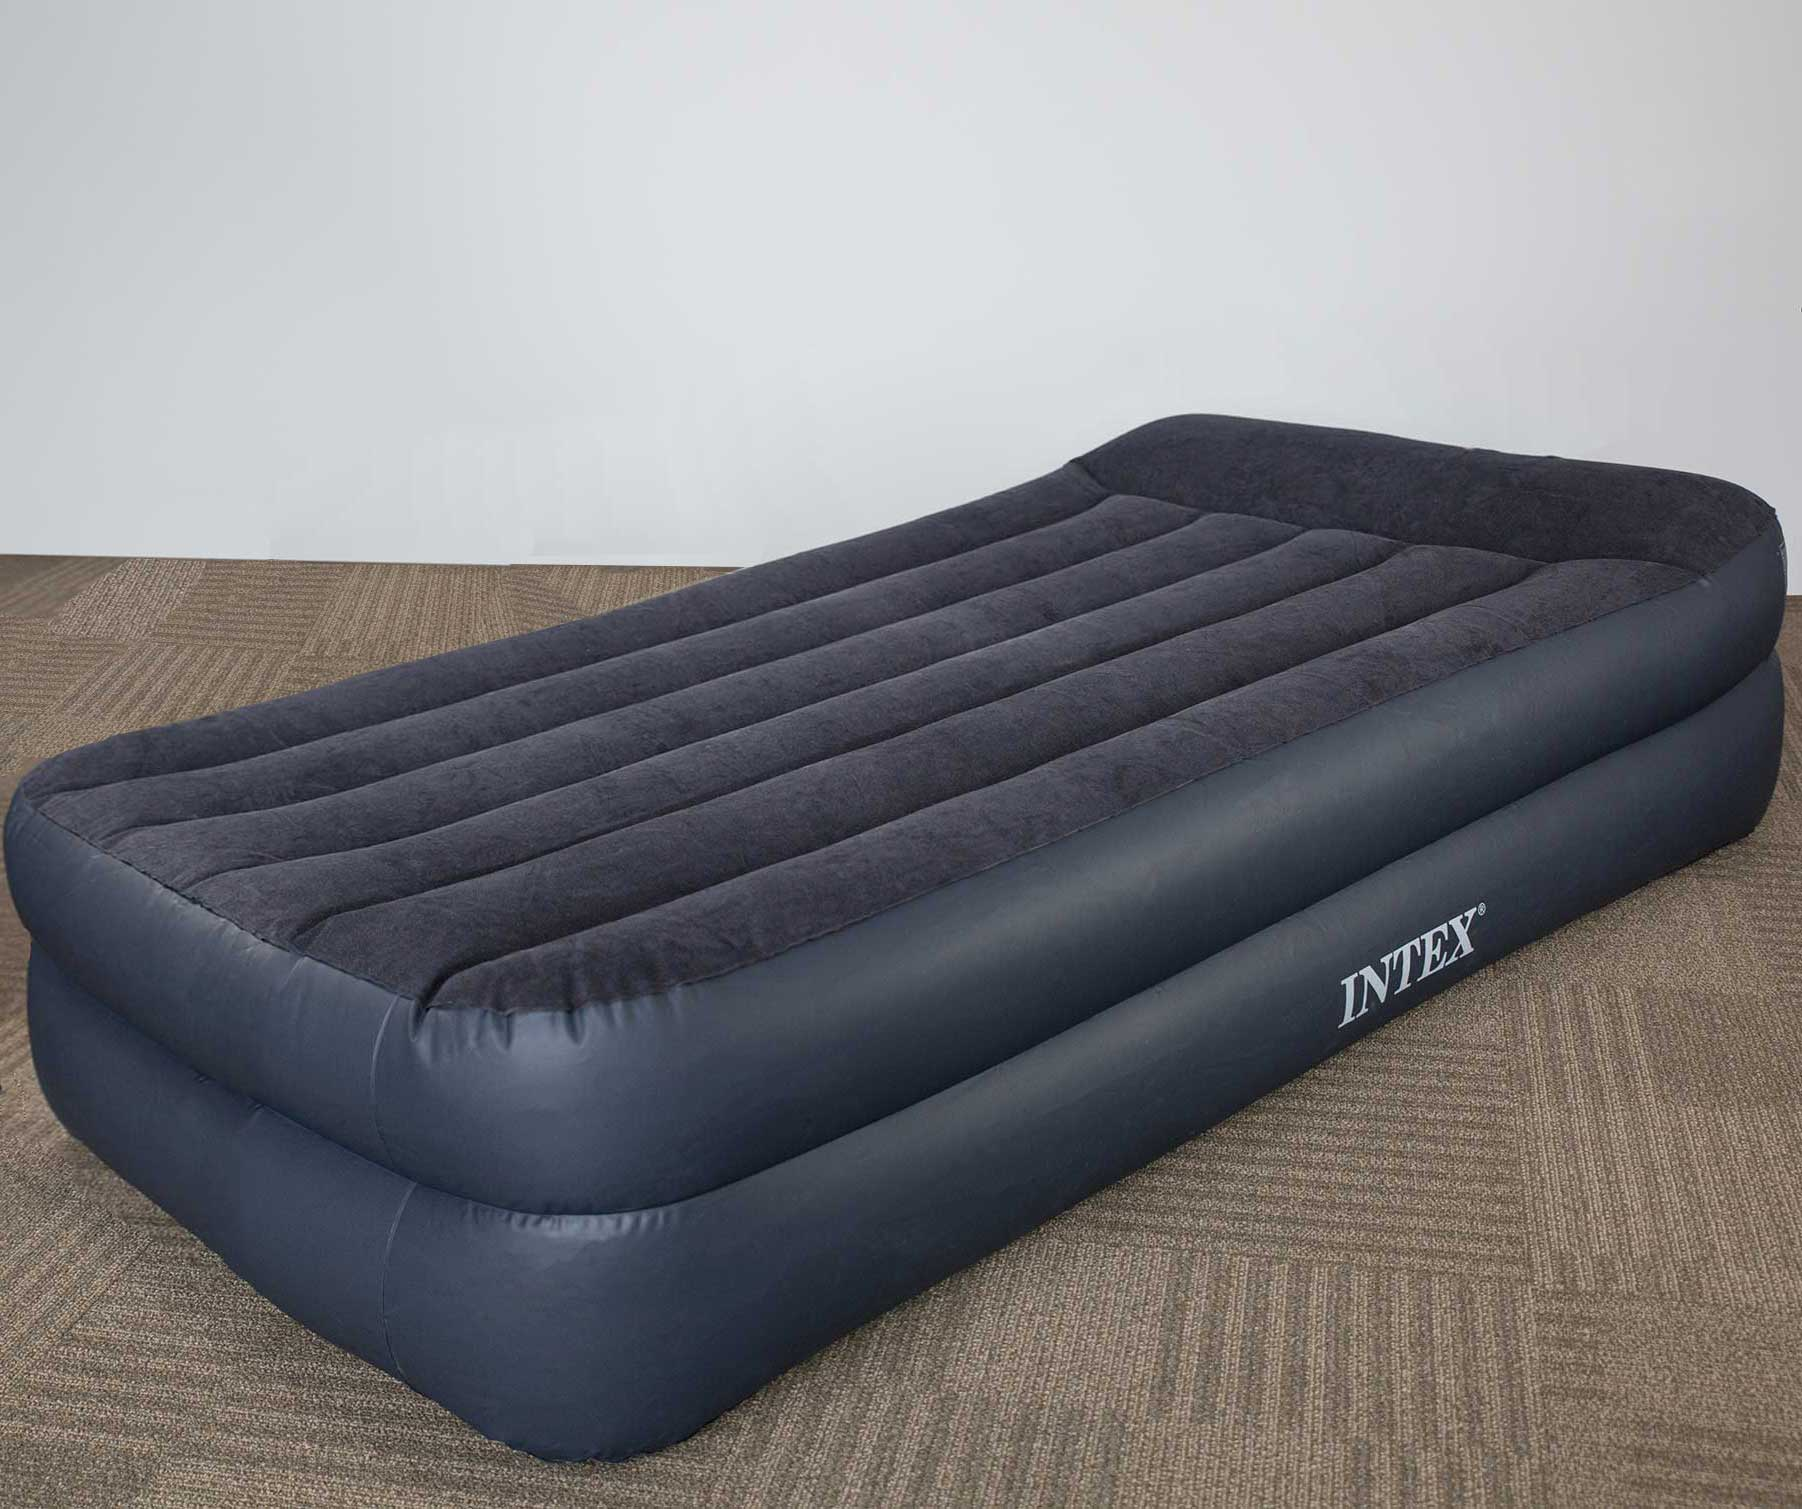 intex twin raised pillow air mattress bed with built in. Black Bedroom Furniture Sets. Home Design Ideas